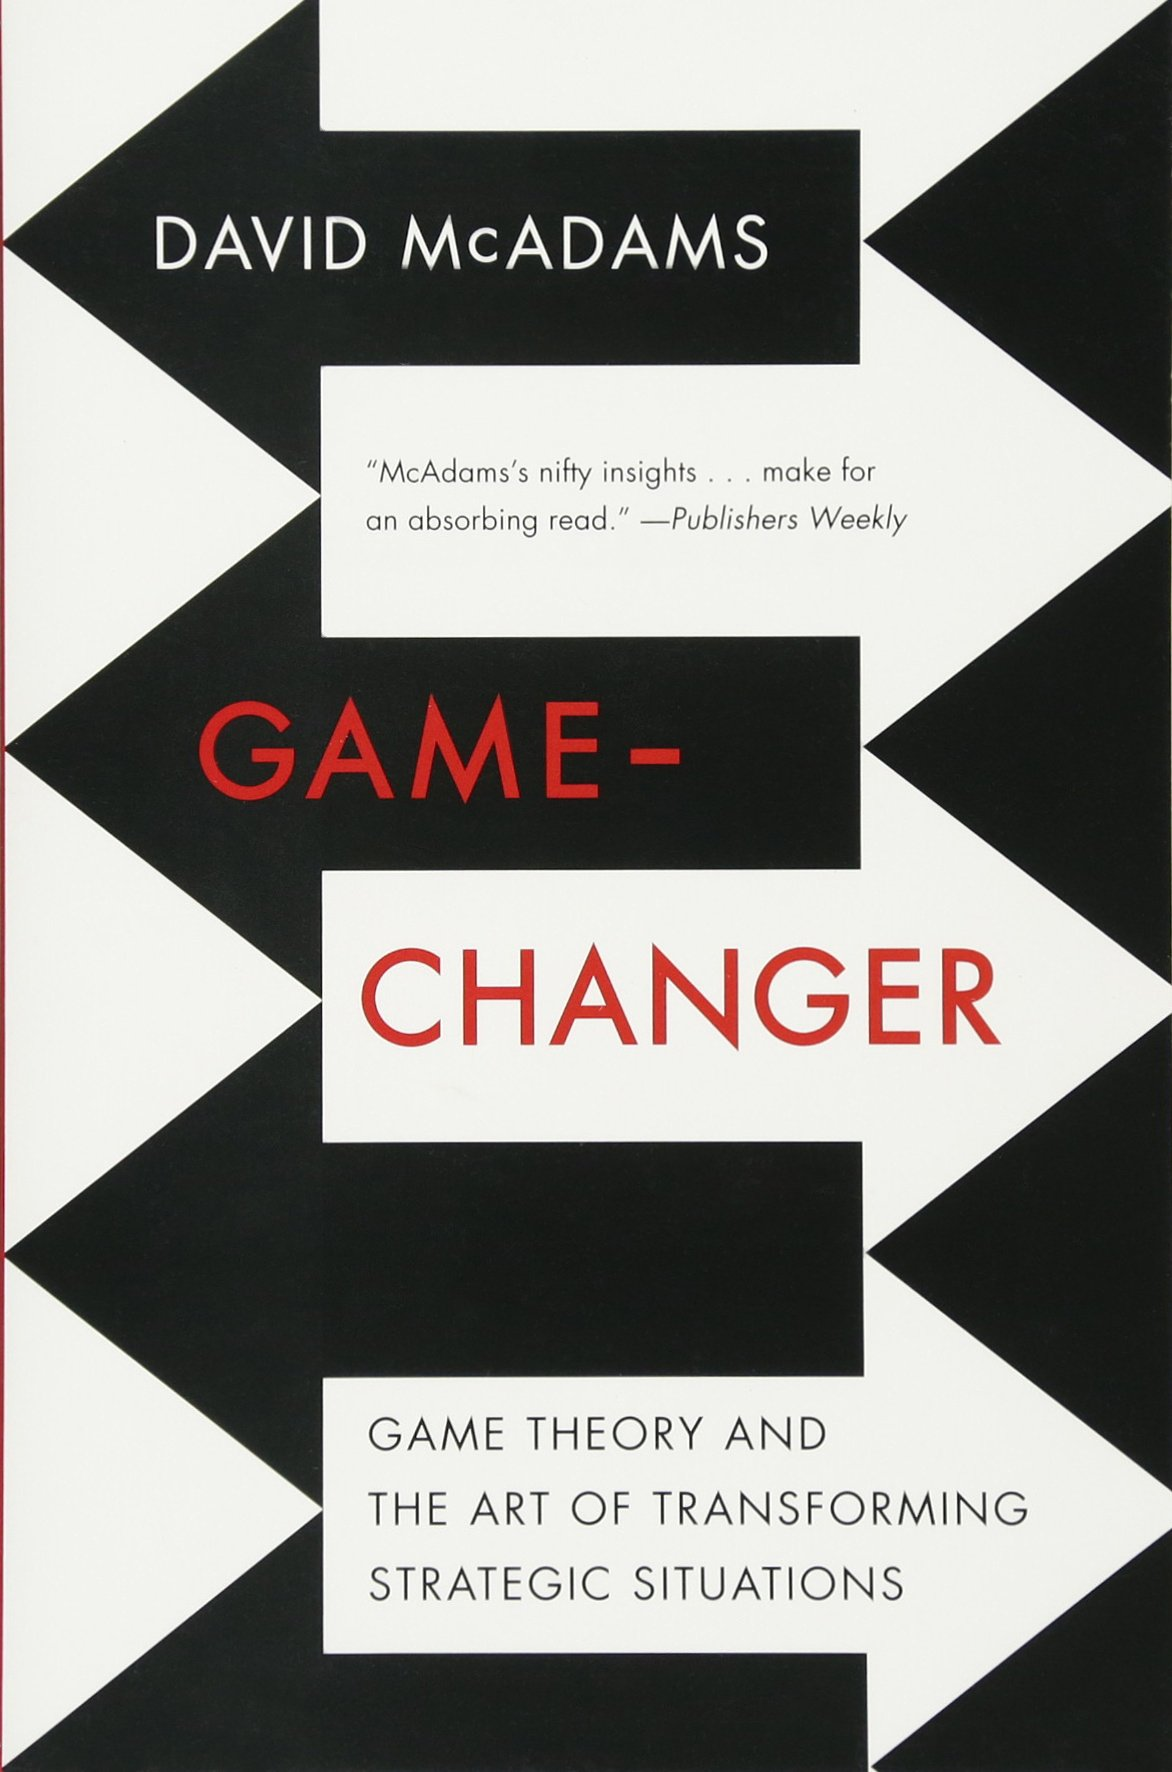 Game Theory and the Art of Transforming Strategic Situations